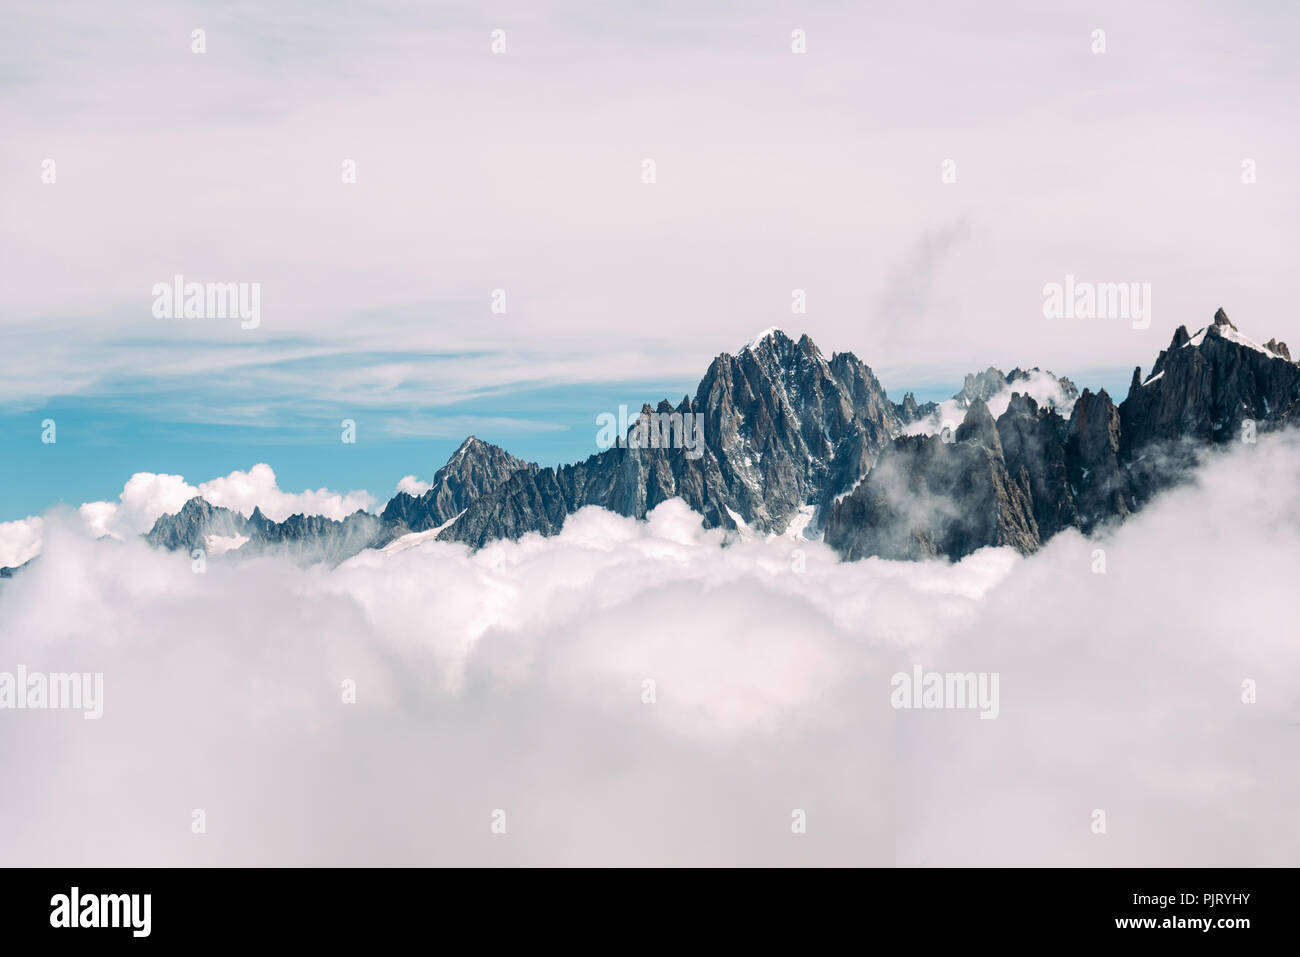 French Alps Above the Clouds - Stock Image